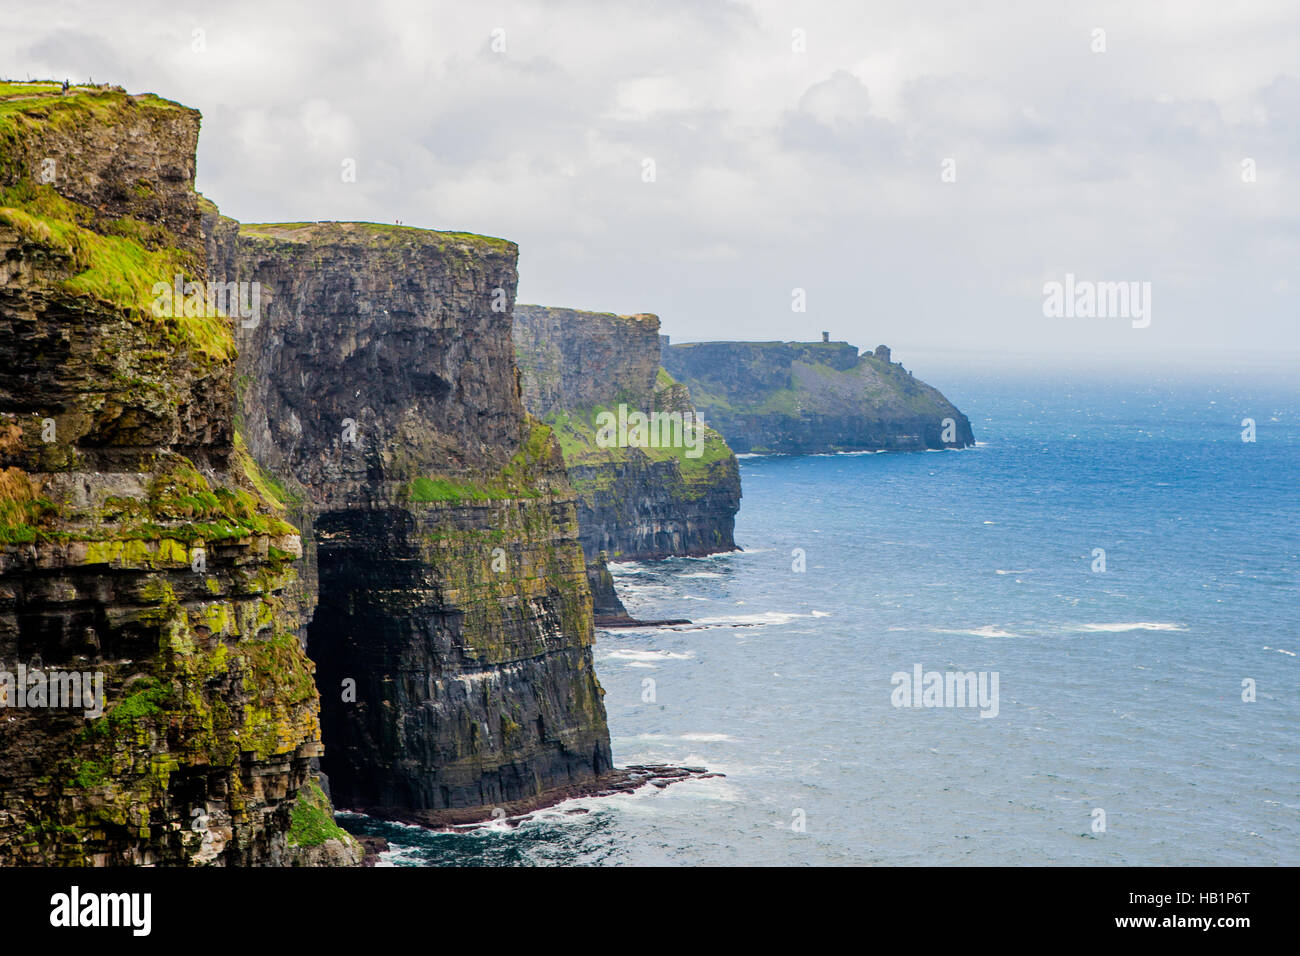 Cliffs of Moher, Burren region, County Clare, Ireland - August 23, 2010: Cliffs of Moher. They rise 120 metres above - Stock Image